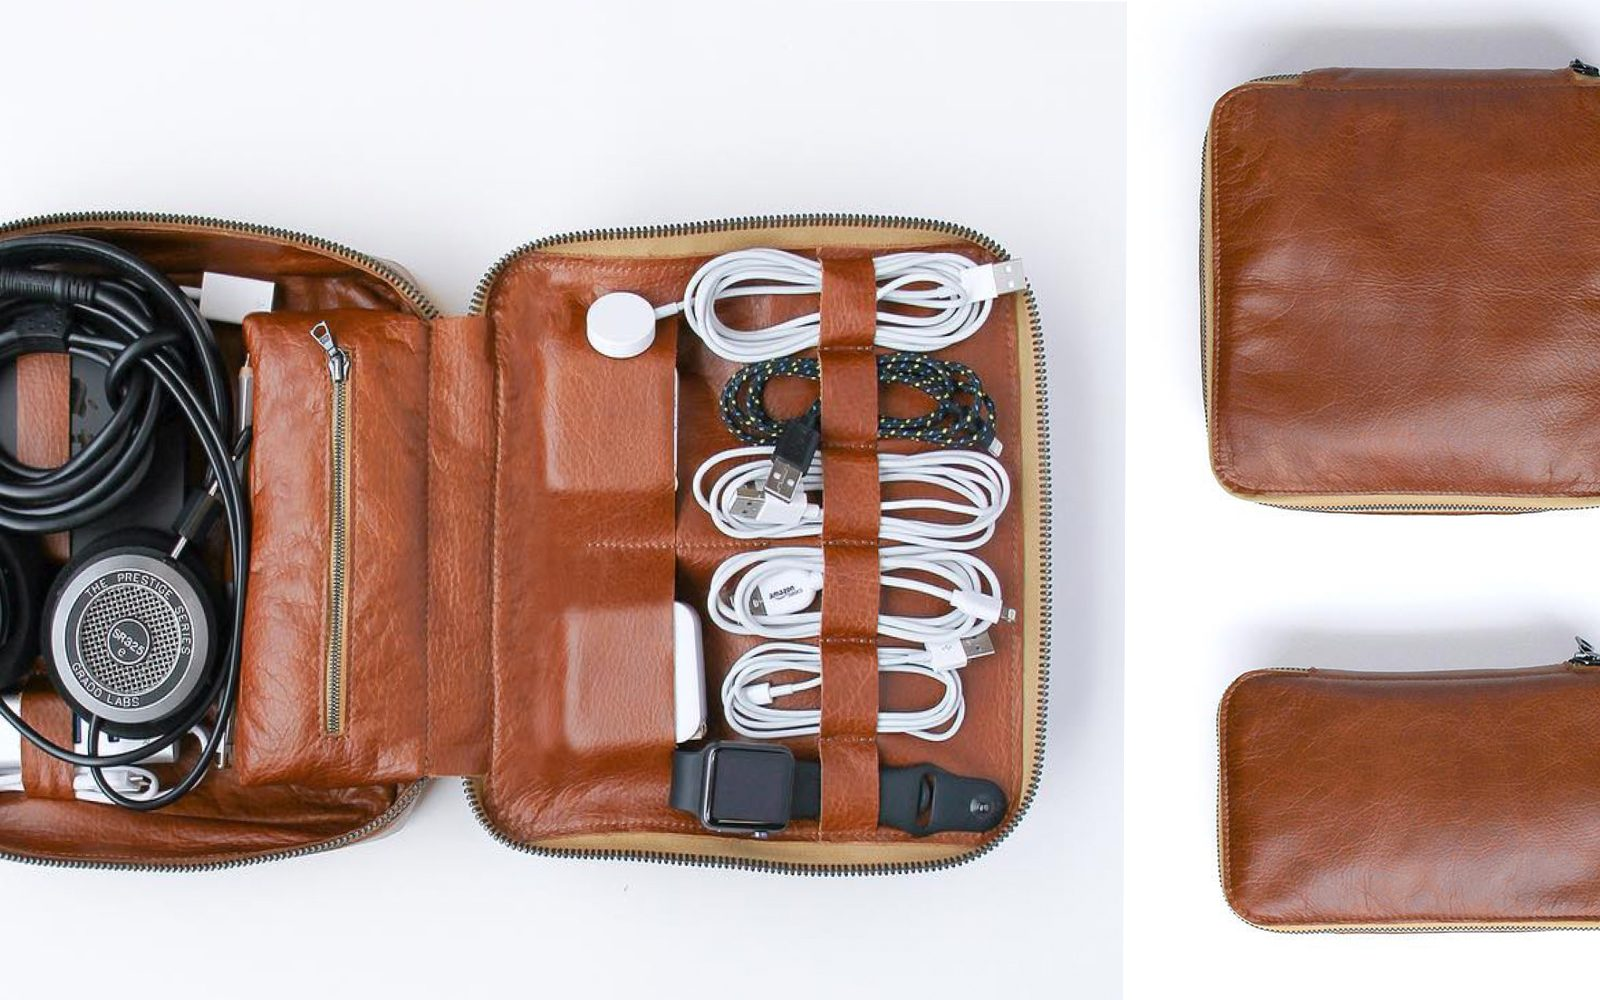 This is Ground announces new Tech Dopp Kit made by hand in LA - 9to5Toys 5825e41531d0c